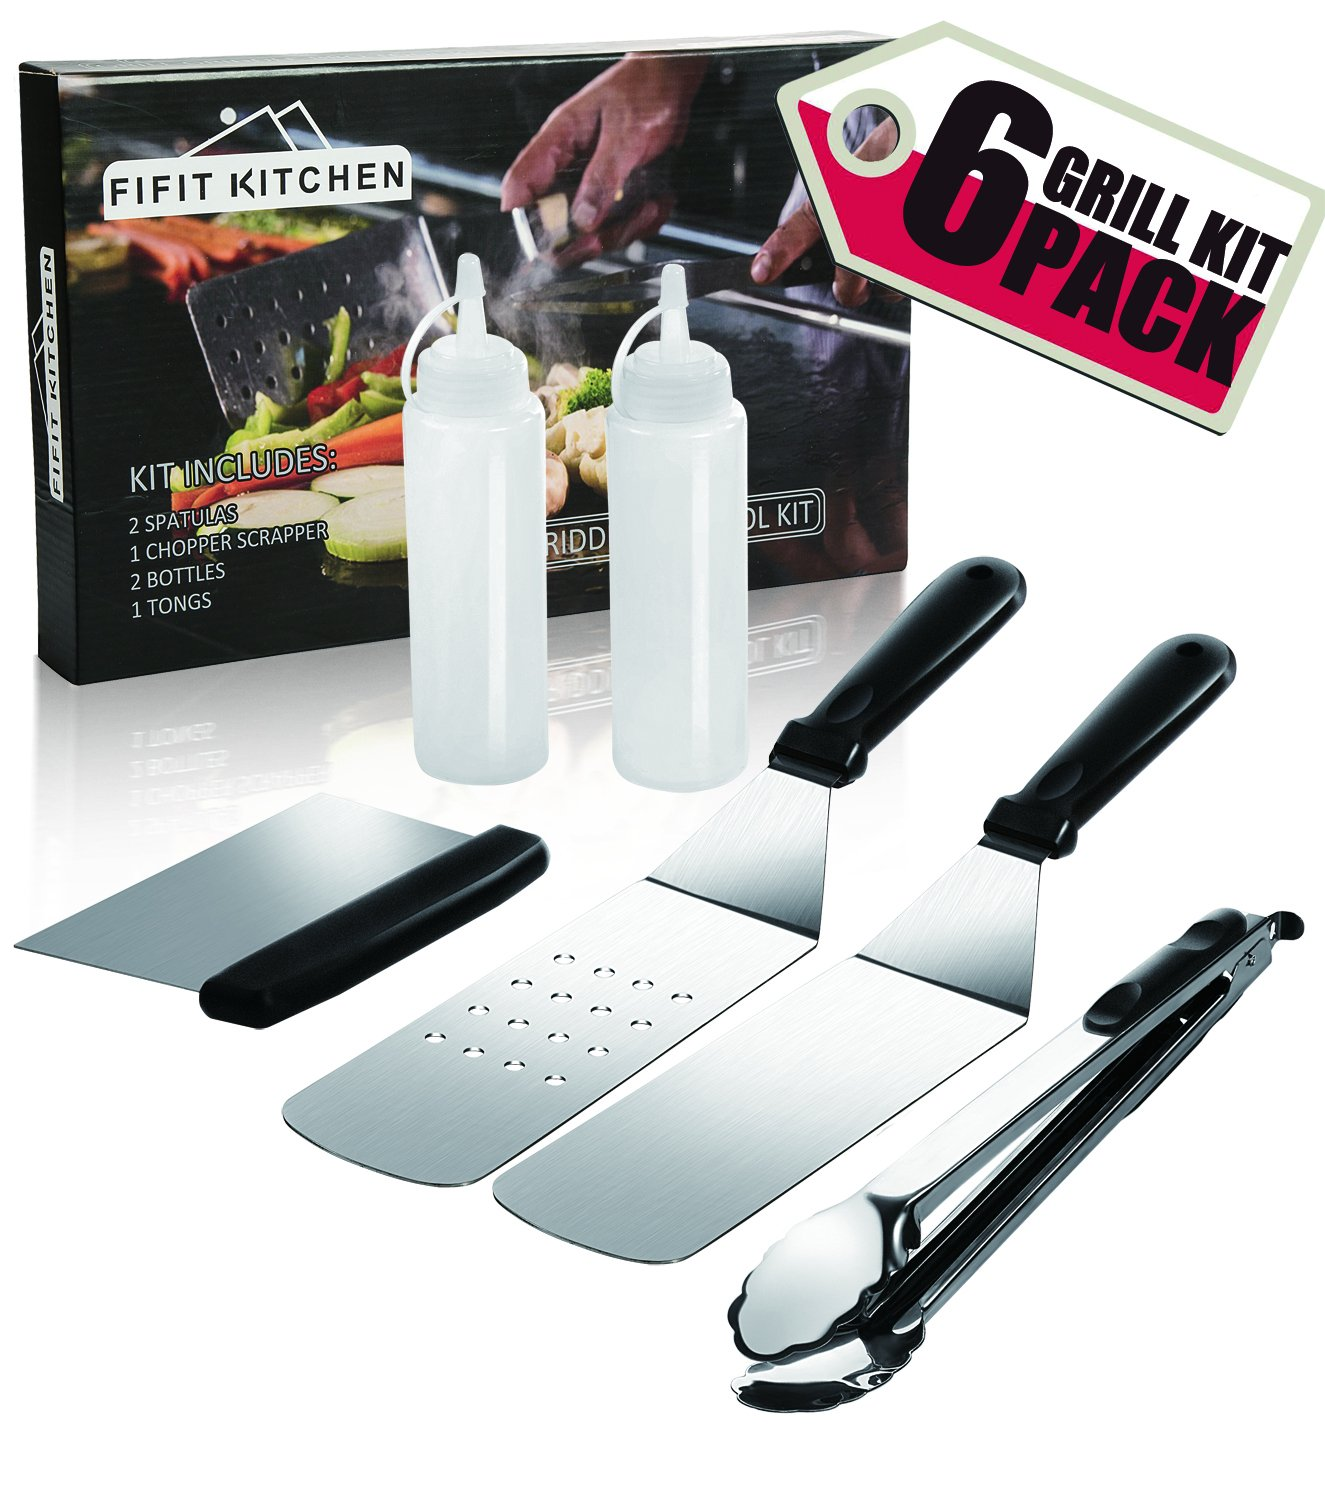 FIFIT KITCHEN Grill Griddle Accessories BBQ Tool Kit-6 Piece Grilling Utensils Set for Flat Top Cooking Teppanyaki Grills and Griddle